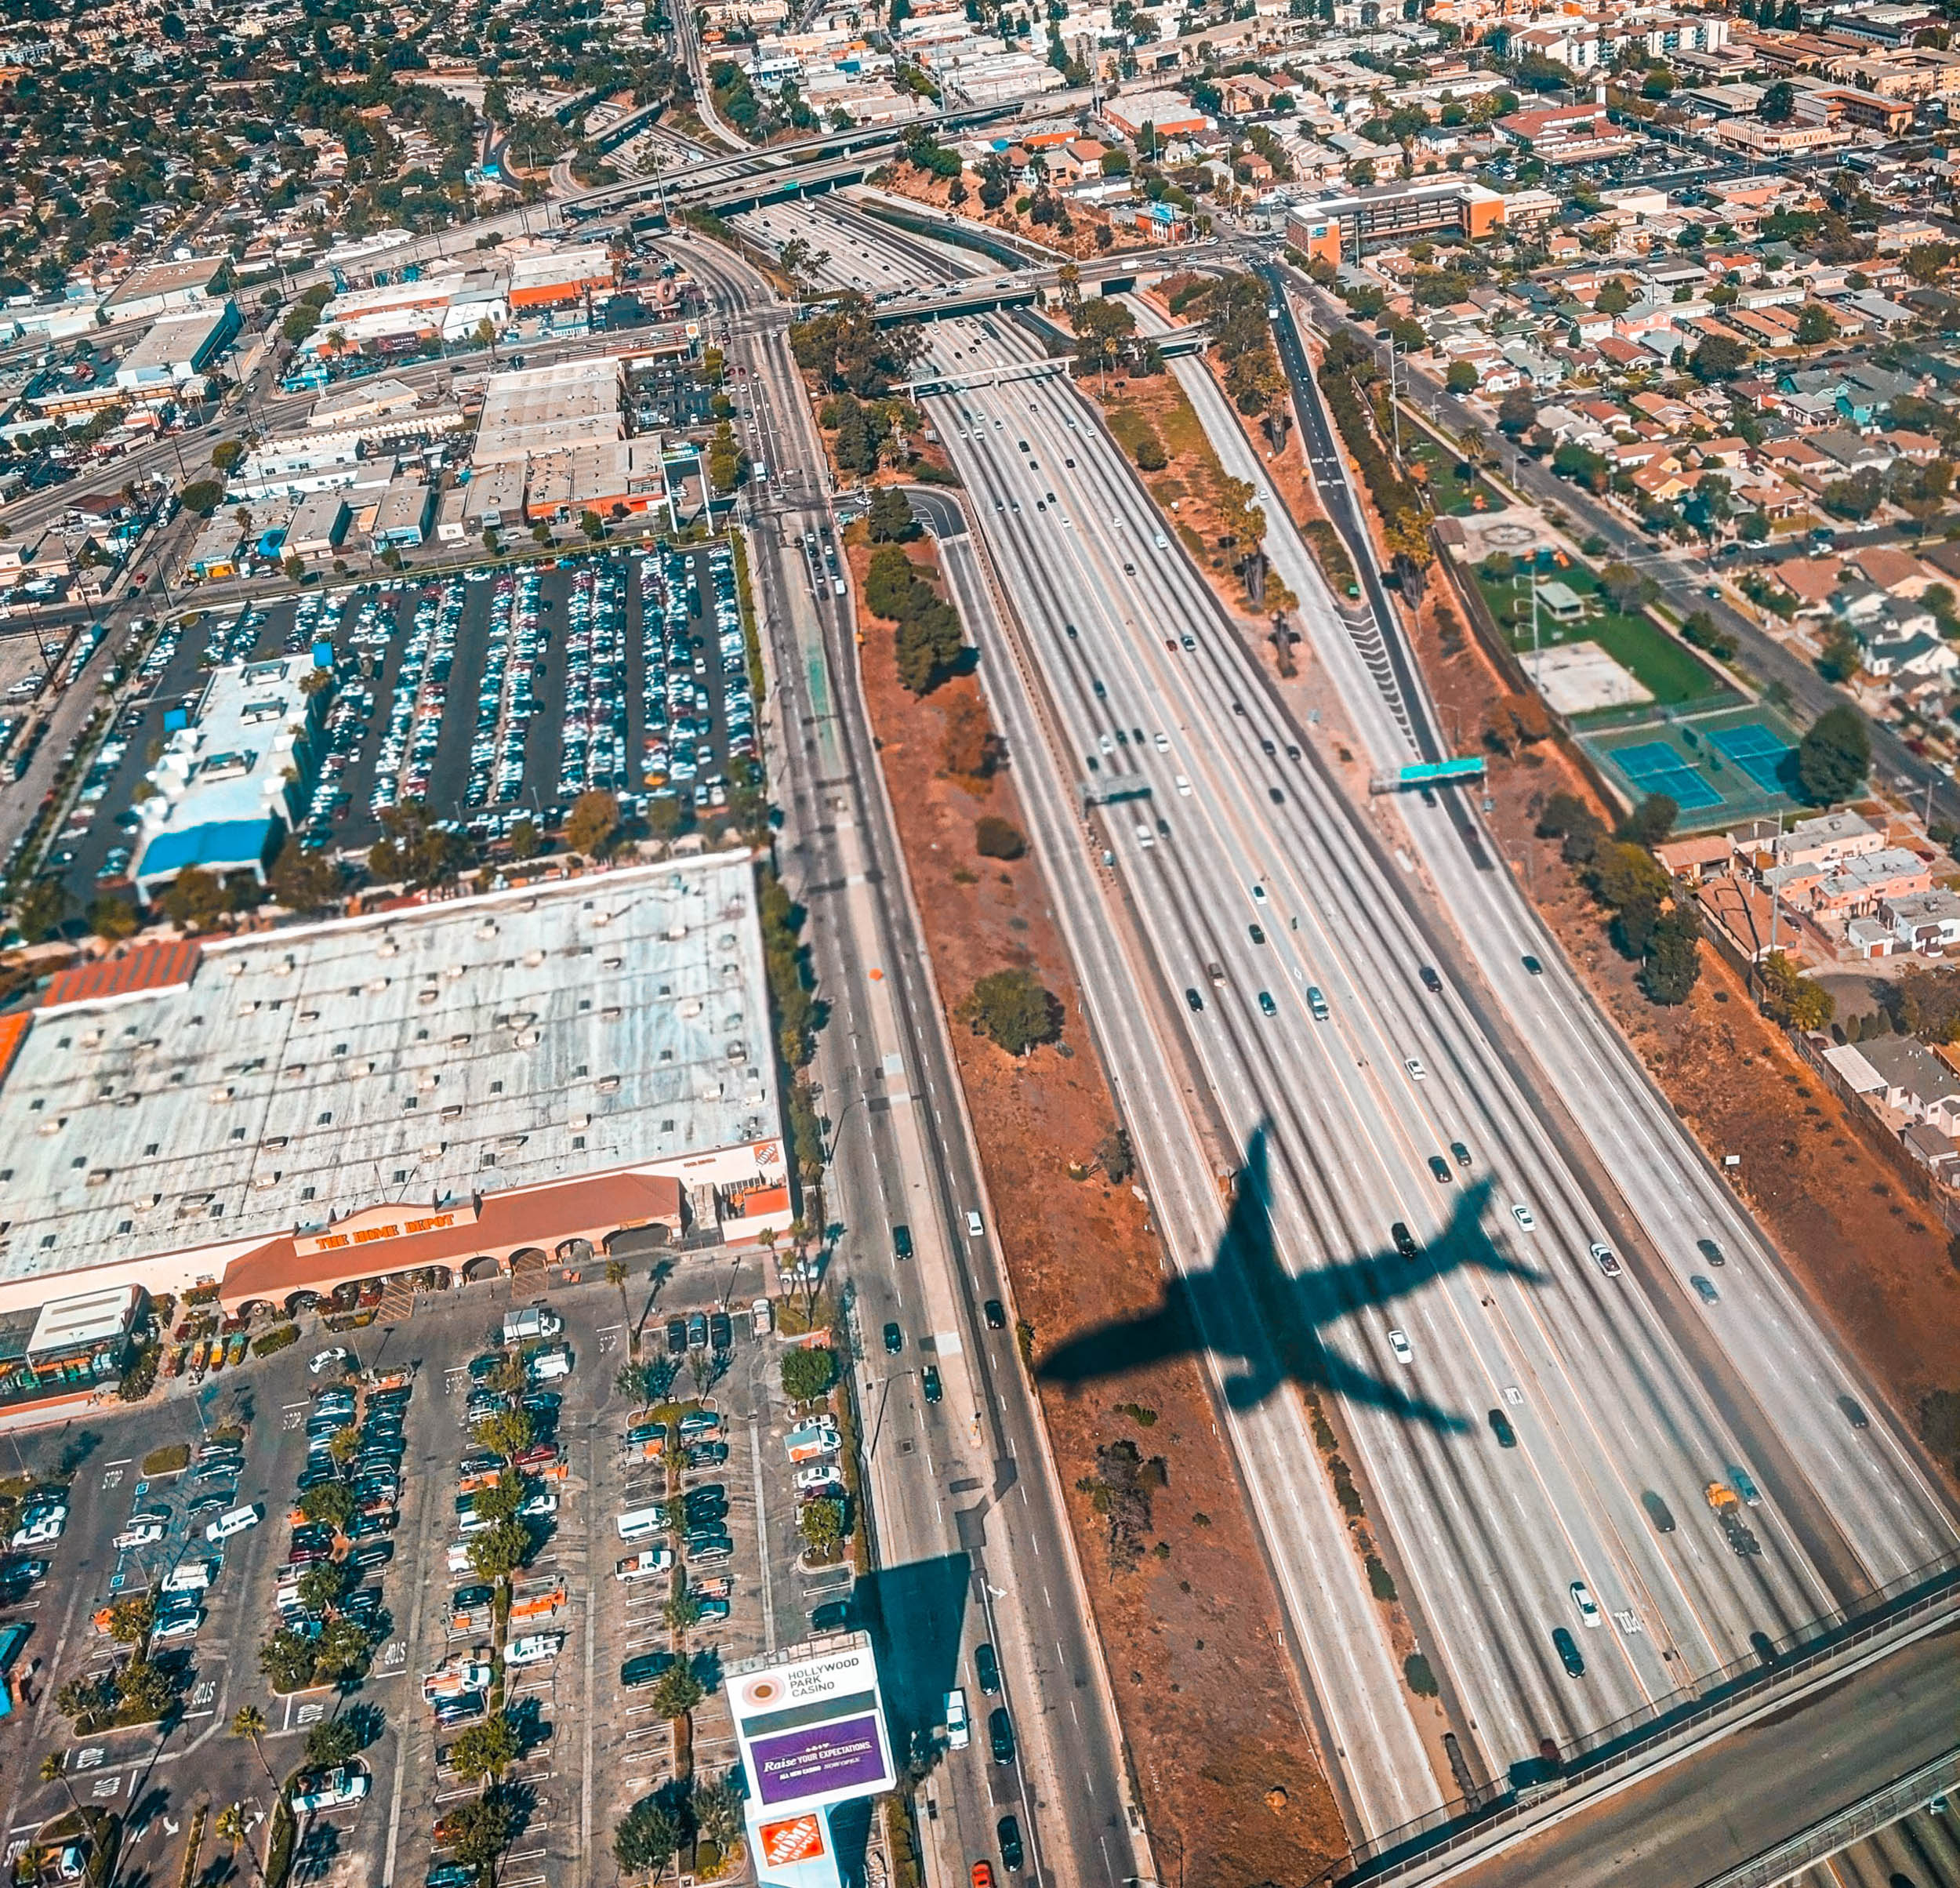 naina.co, naina redhu, nainaxadobe, adobemax2019, adobemax19, adobe max creativity conference los angeles, eyesforla, adobe max, adobe max creativity conference, los angeles, metrolink, america from the air, america, USA, adobe conference, hotel view